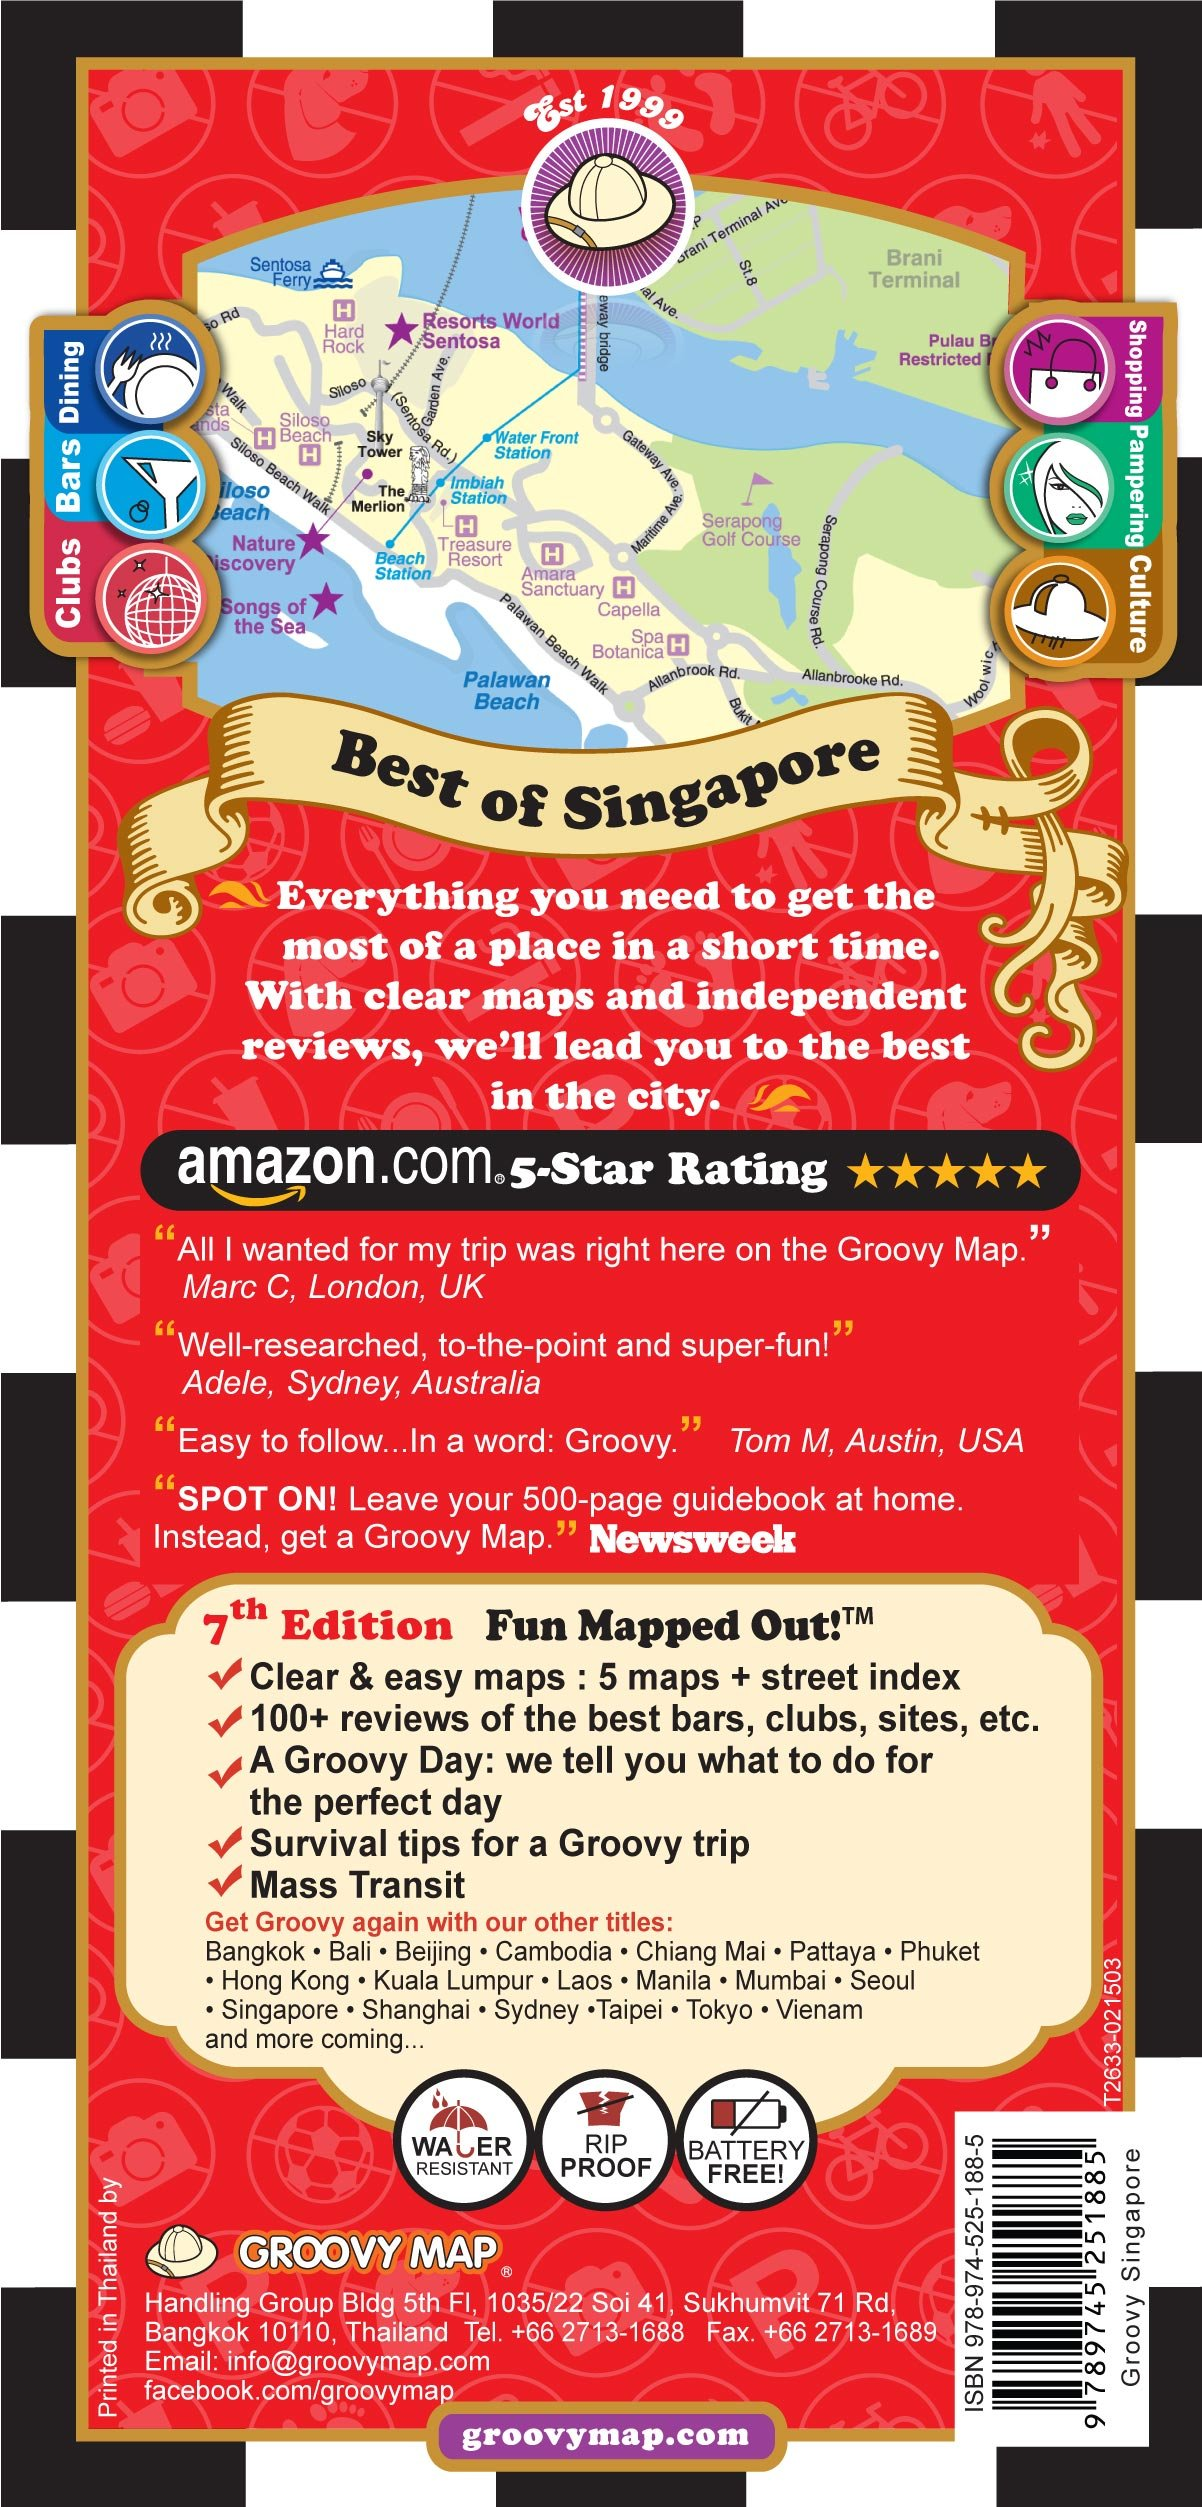 groovy map groovy map tutorial grails cookbook wb groovy map  - groovy map guide singapore aaron frankel groovy map